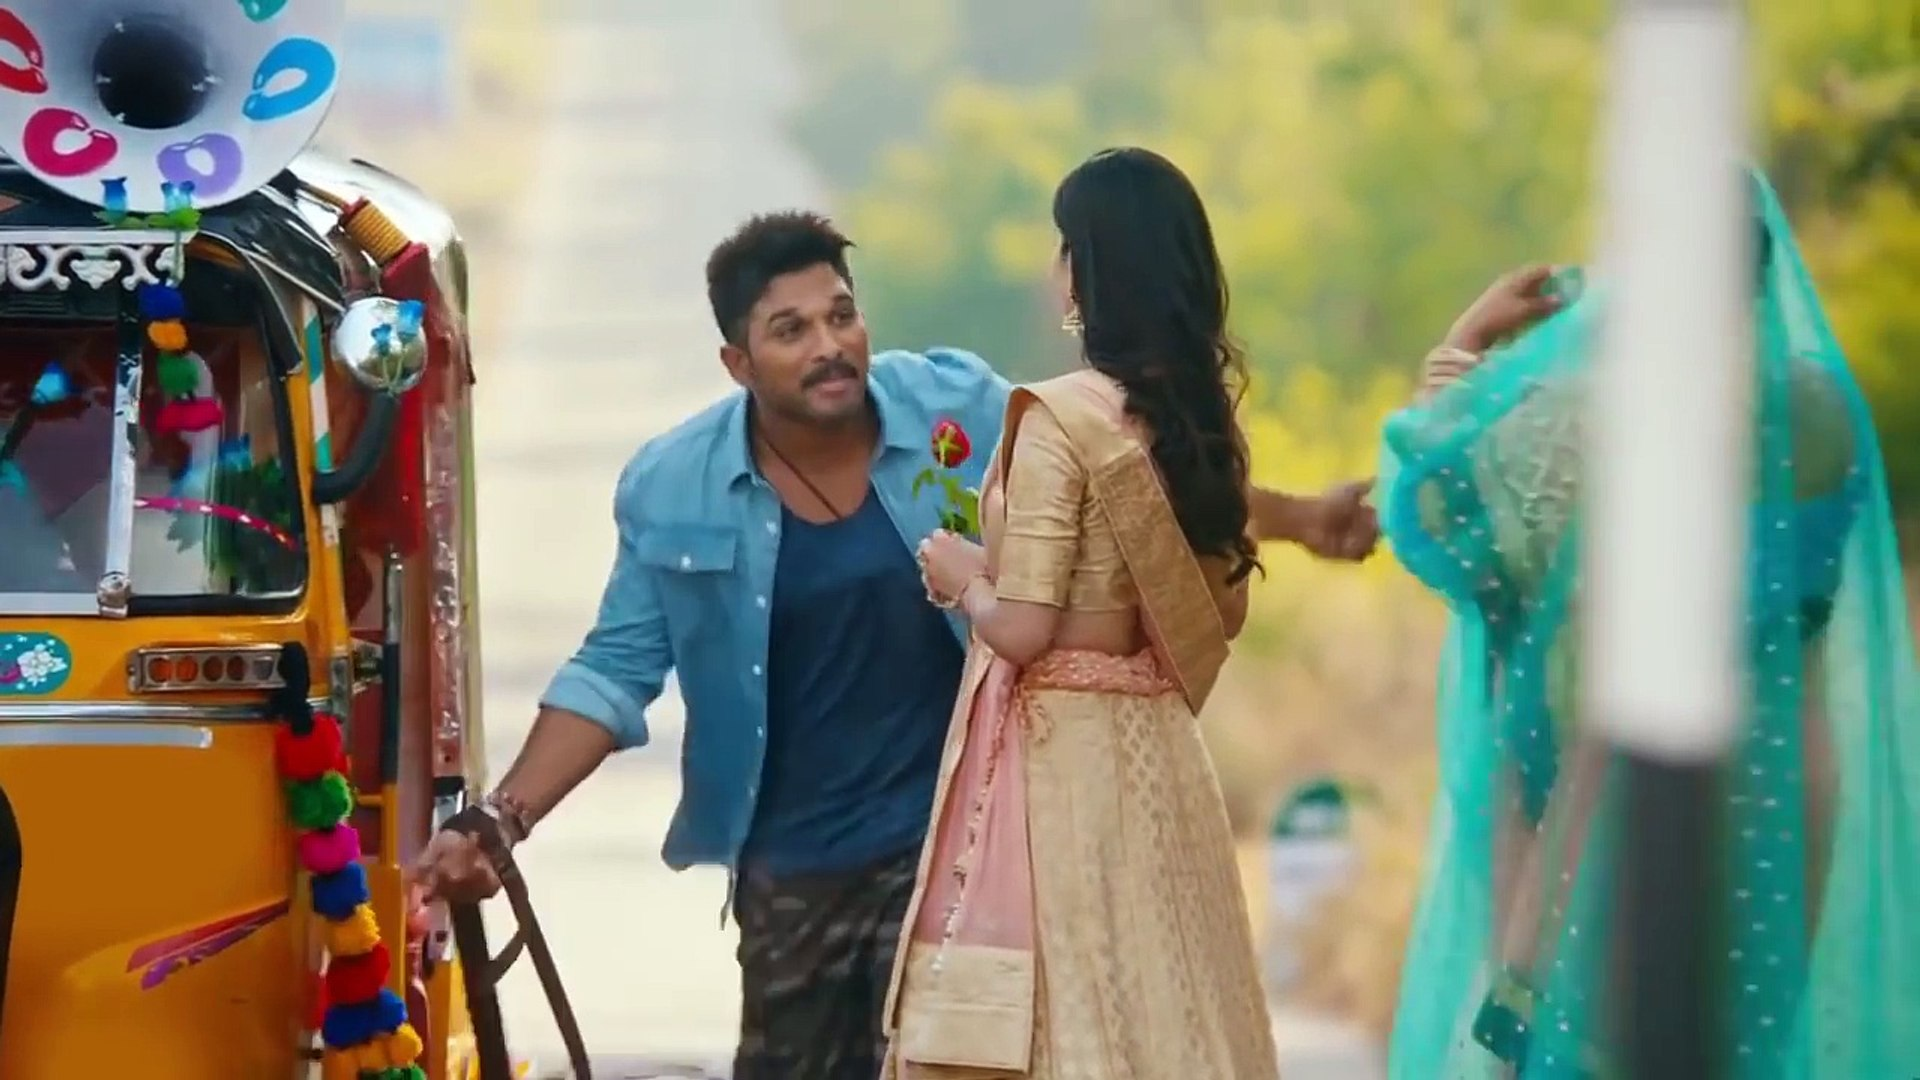 ALLU ARJUN New Movie Trailer 2018 -South Indian hindi dubbed movie trailer-Watch online play in mobi